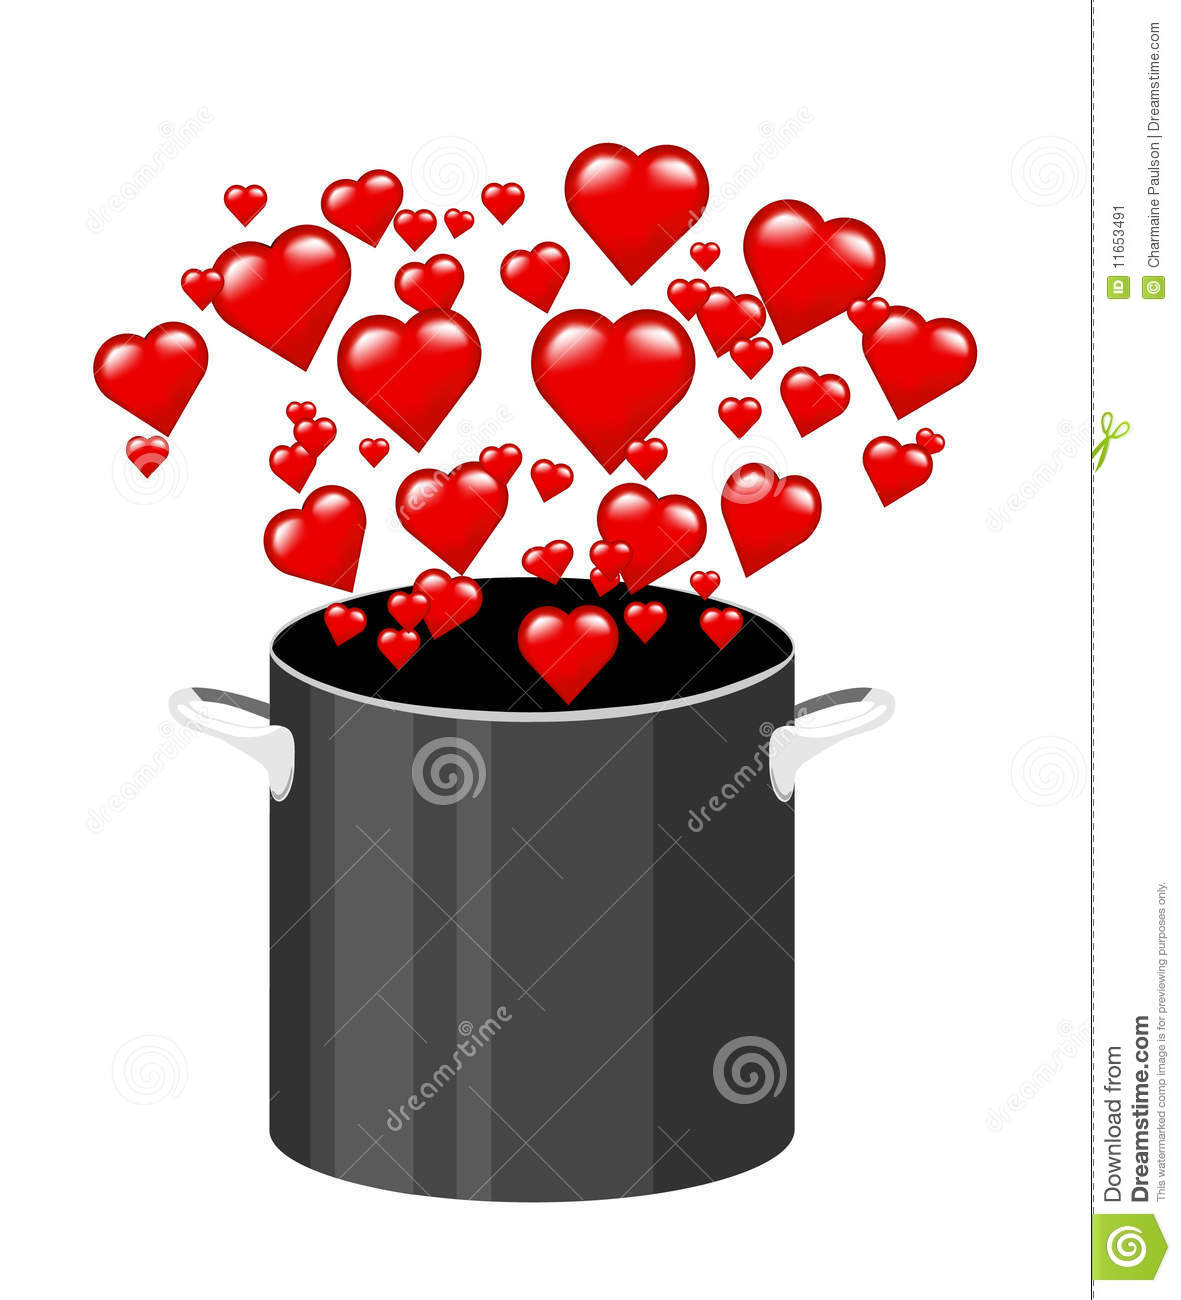 Cooking With Love Stock Image  Image 11653491